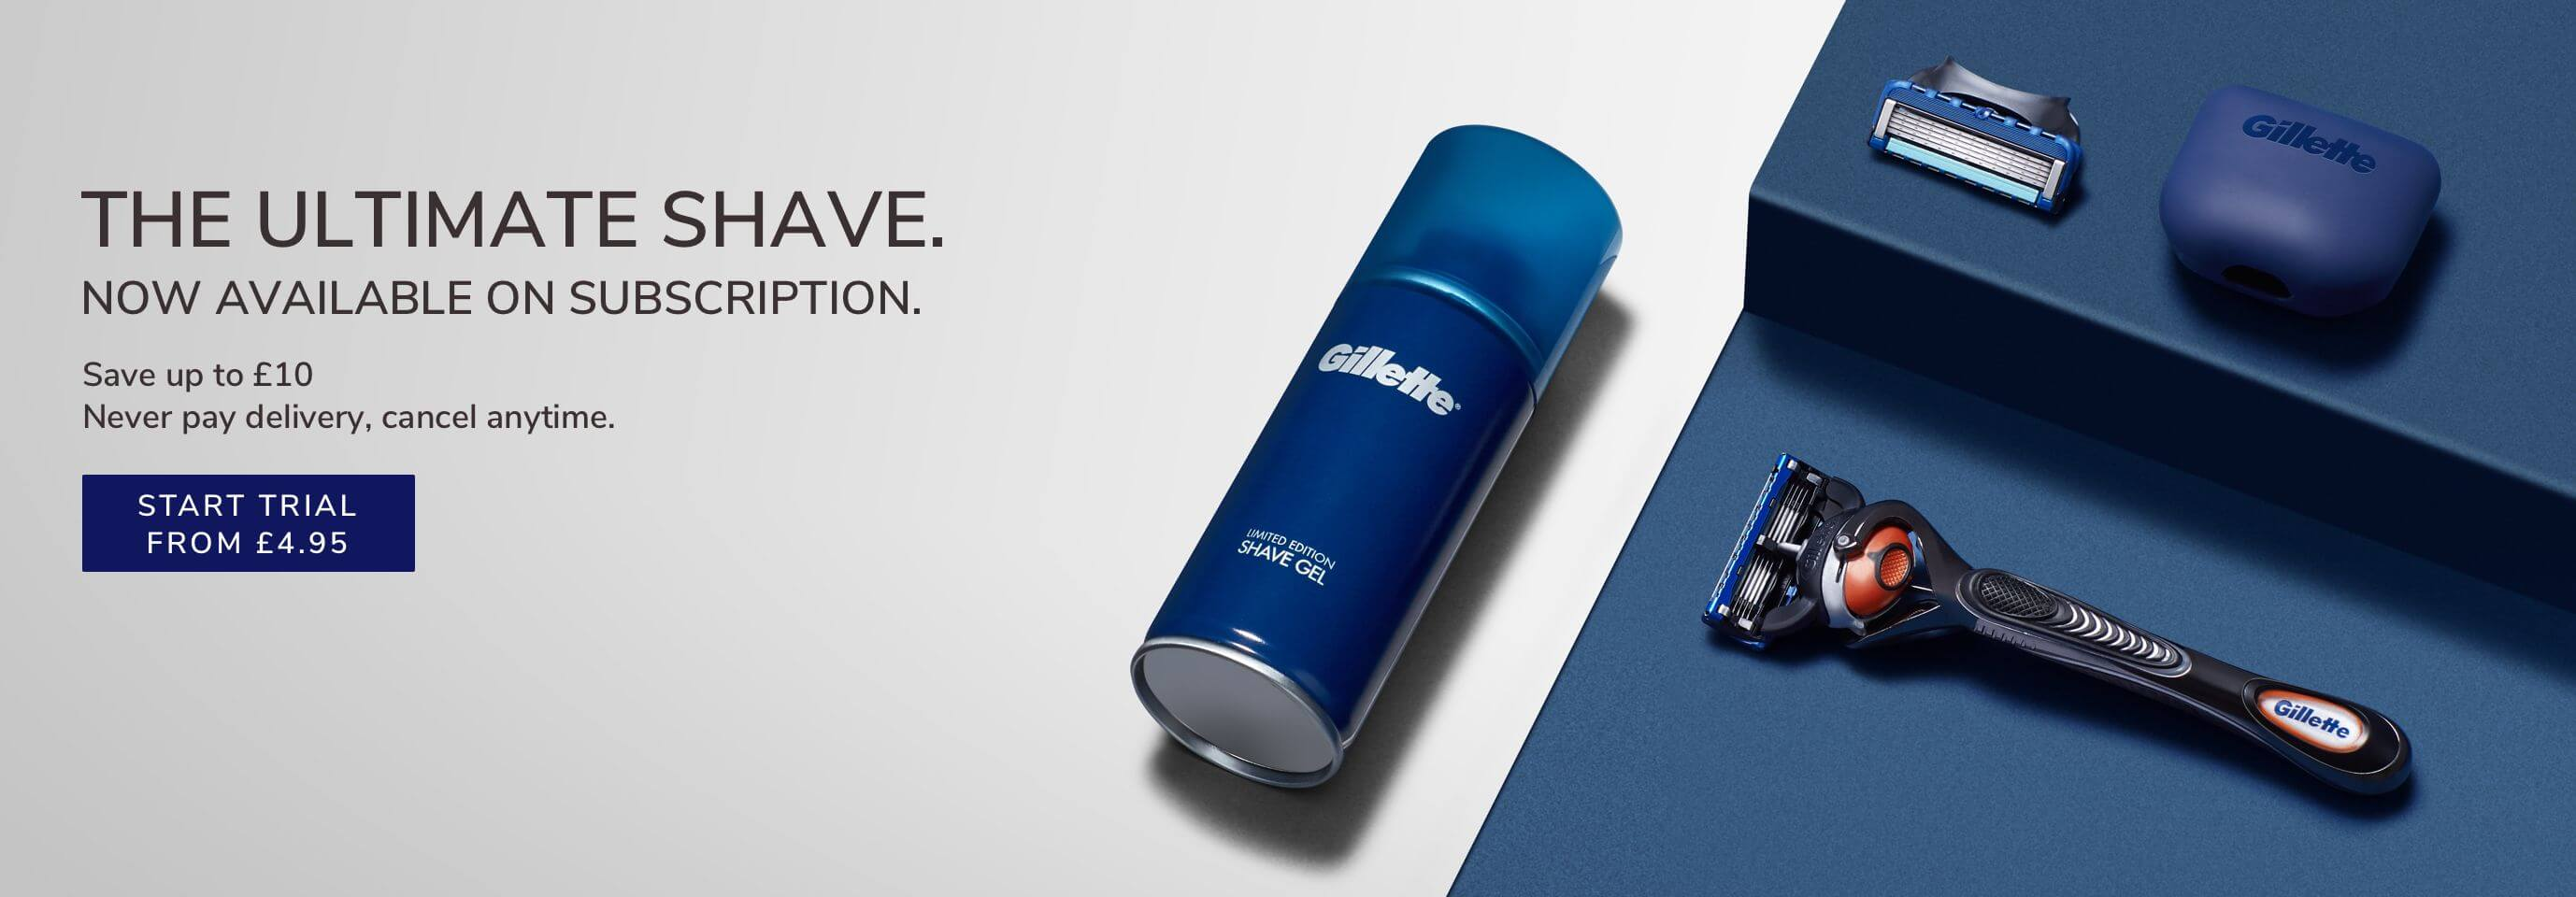 Gillette Shave Subscription, start trial.